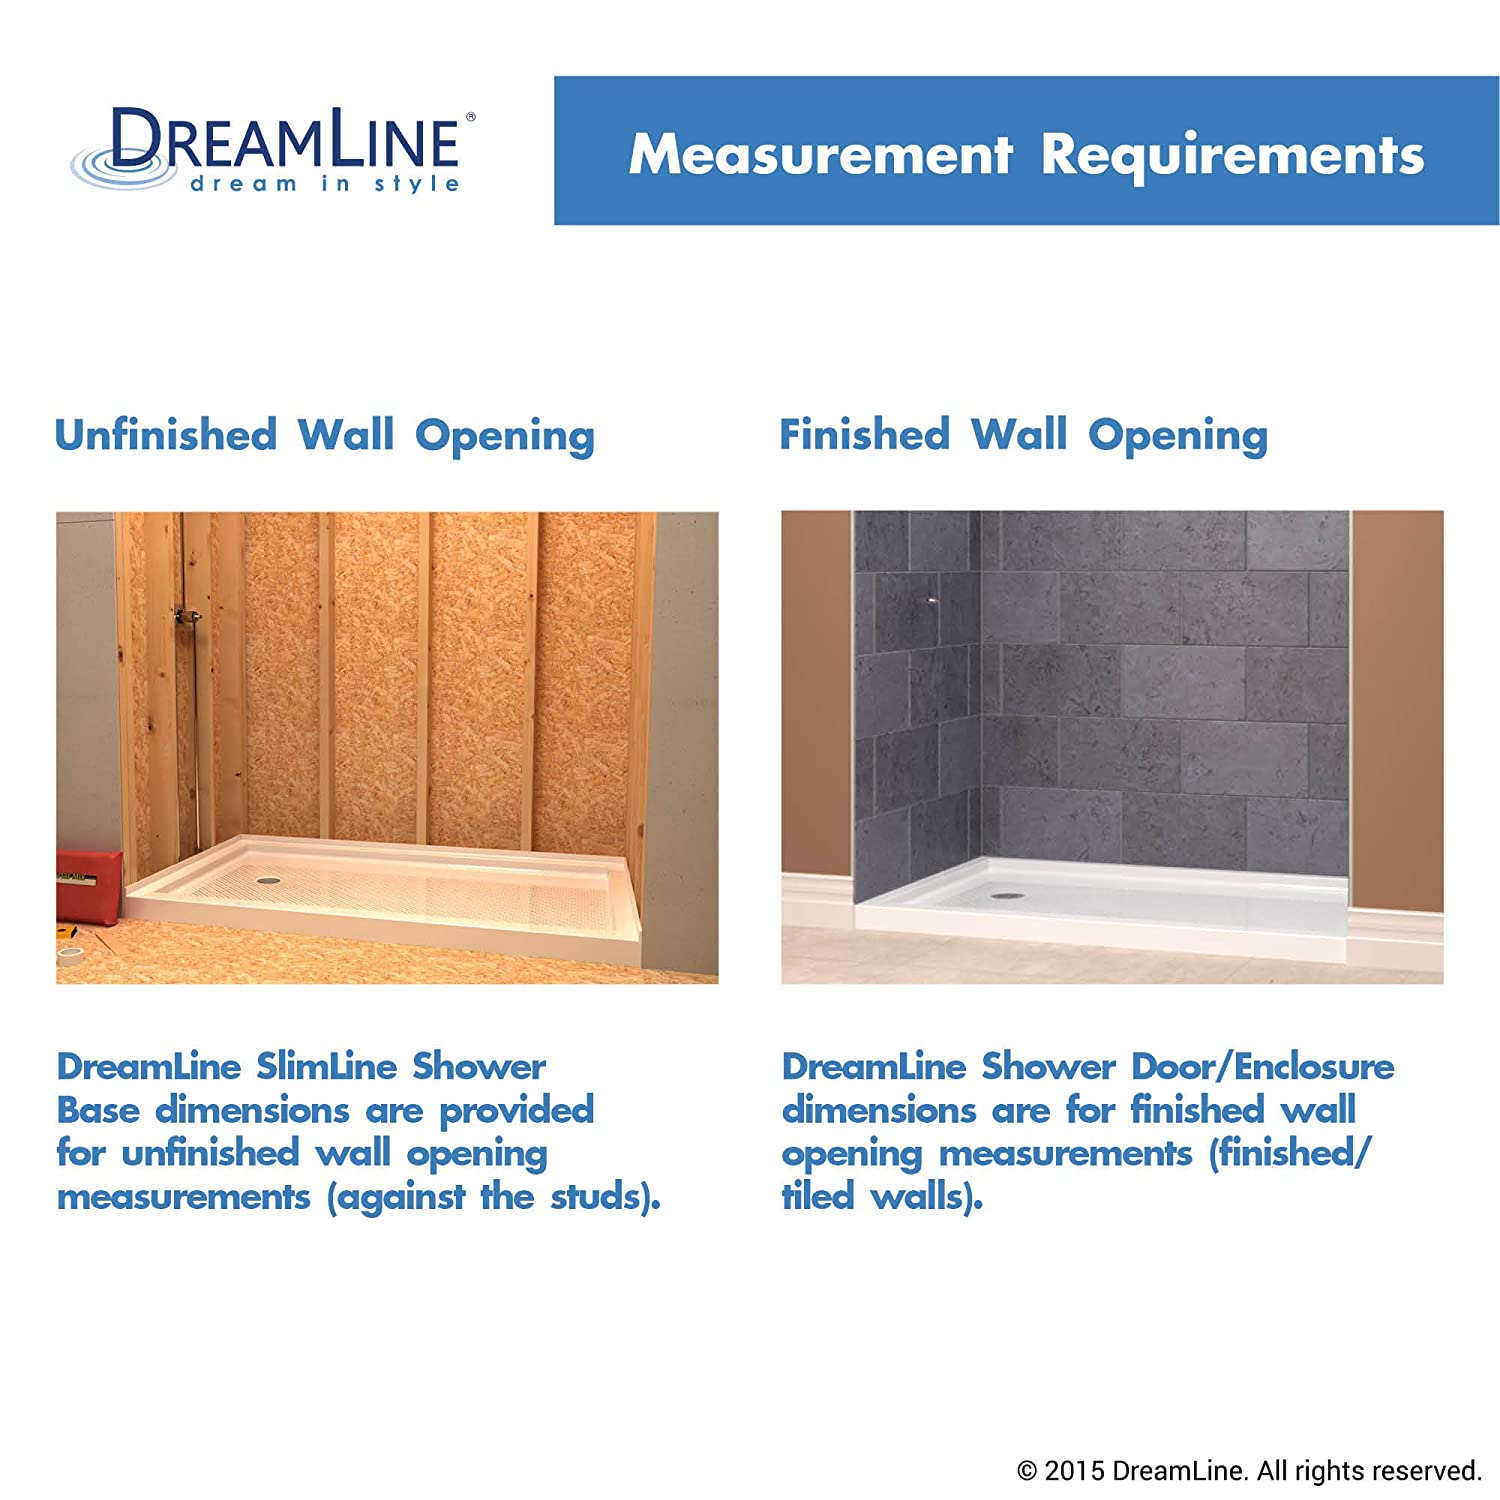 DreamLine SlimLine 33 In. X 33 In. Quarter Round Shower Base, DLT 7033330    Round Corner Shower Base   Amazon.com